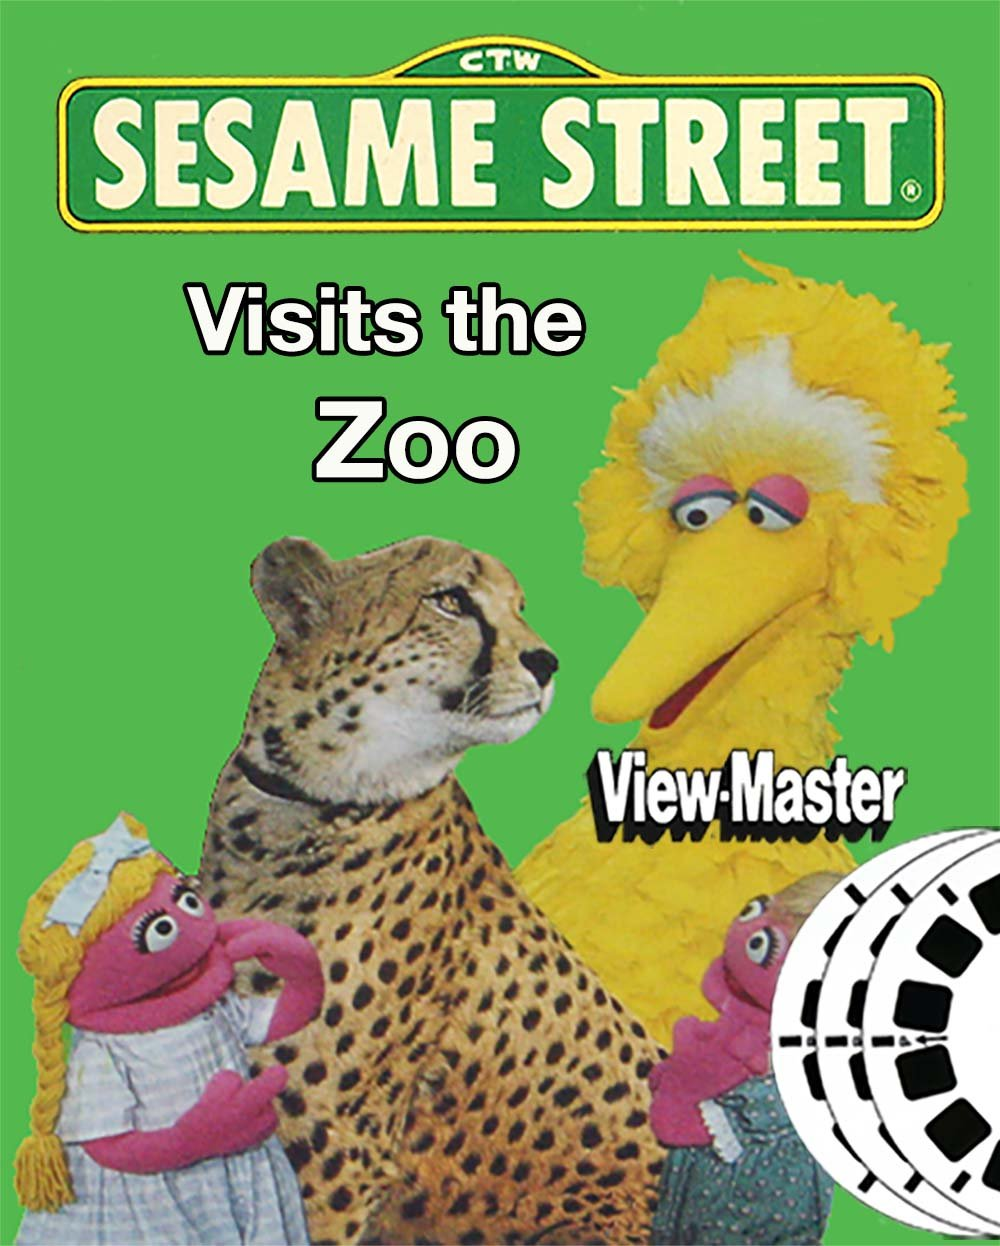 Sesame Visits the Zoo - Classic ViewMaster 3 Reel Set - 21 3D Images - Ernie, Big Bird